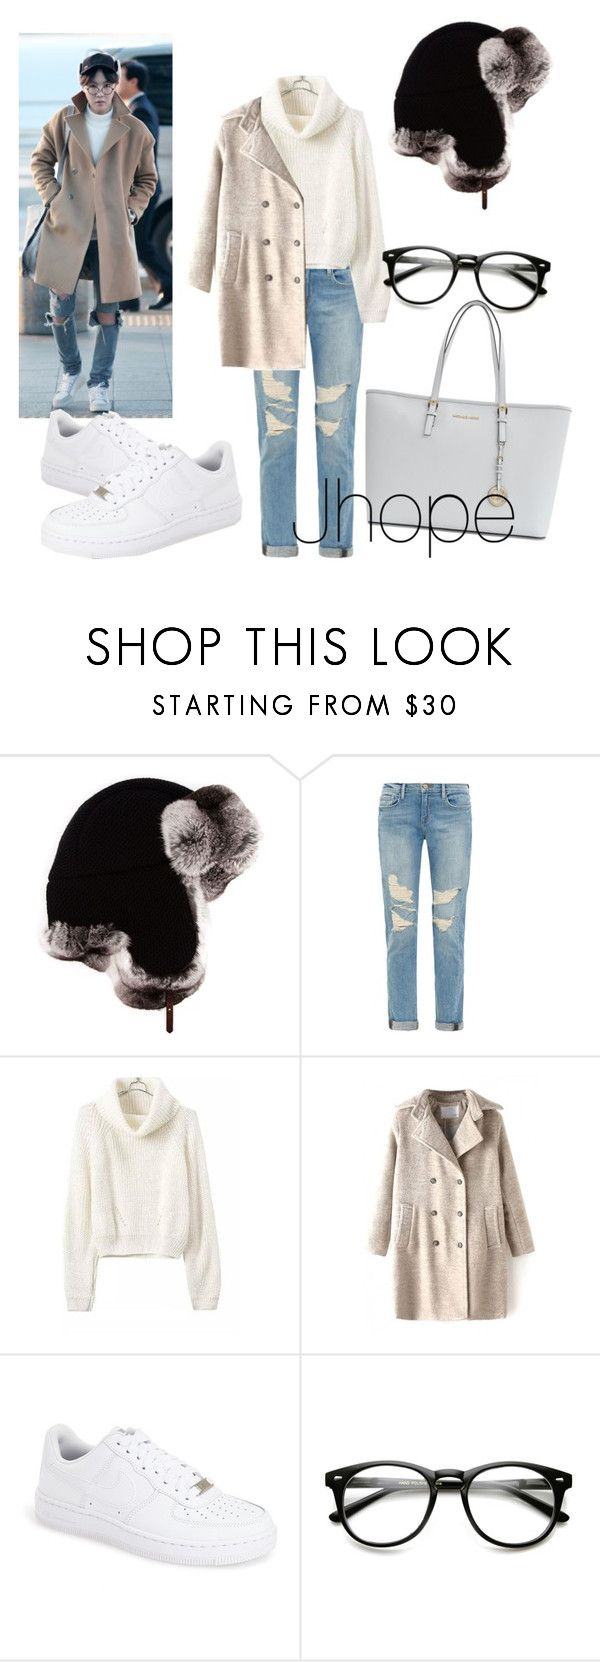 """Jhope bts  inspired outfit"" by mariannaseidita ❤ liked on Polyvore featuring Inverni, Frame Denim, NIKE, Michael Kors, women's clothing, women's fashion, women, female, woman and misses"